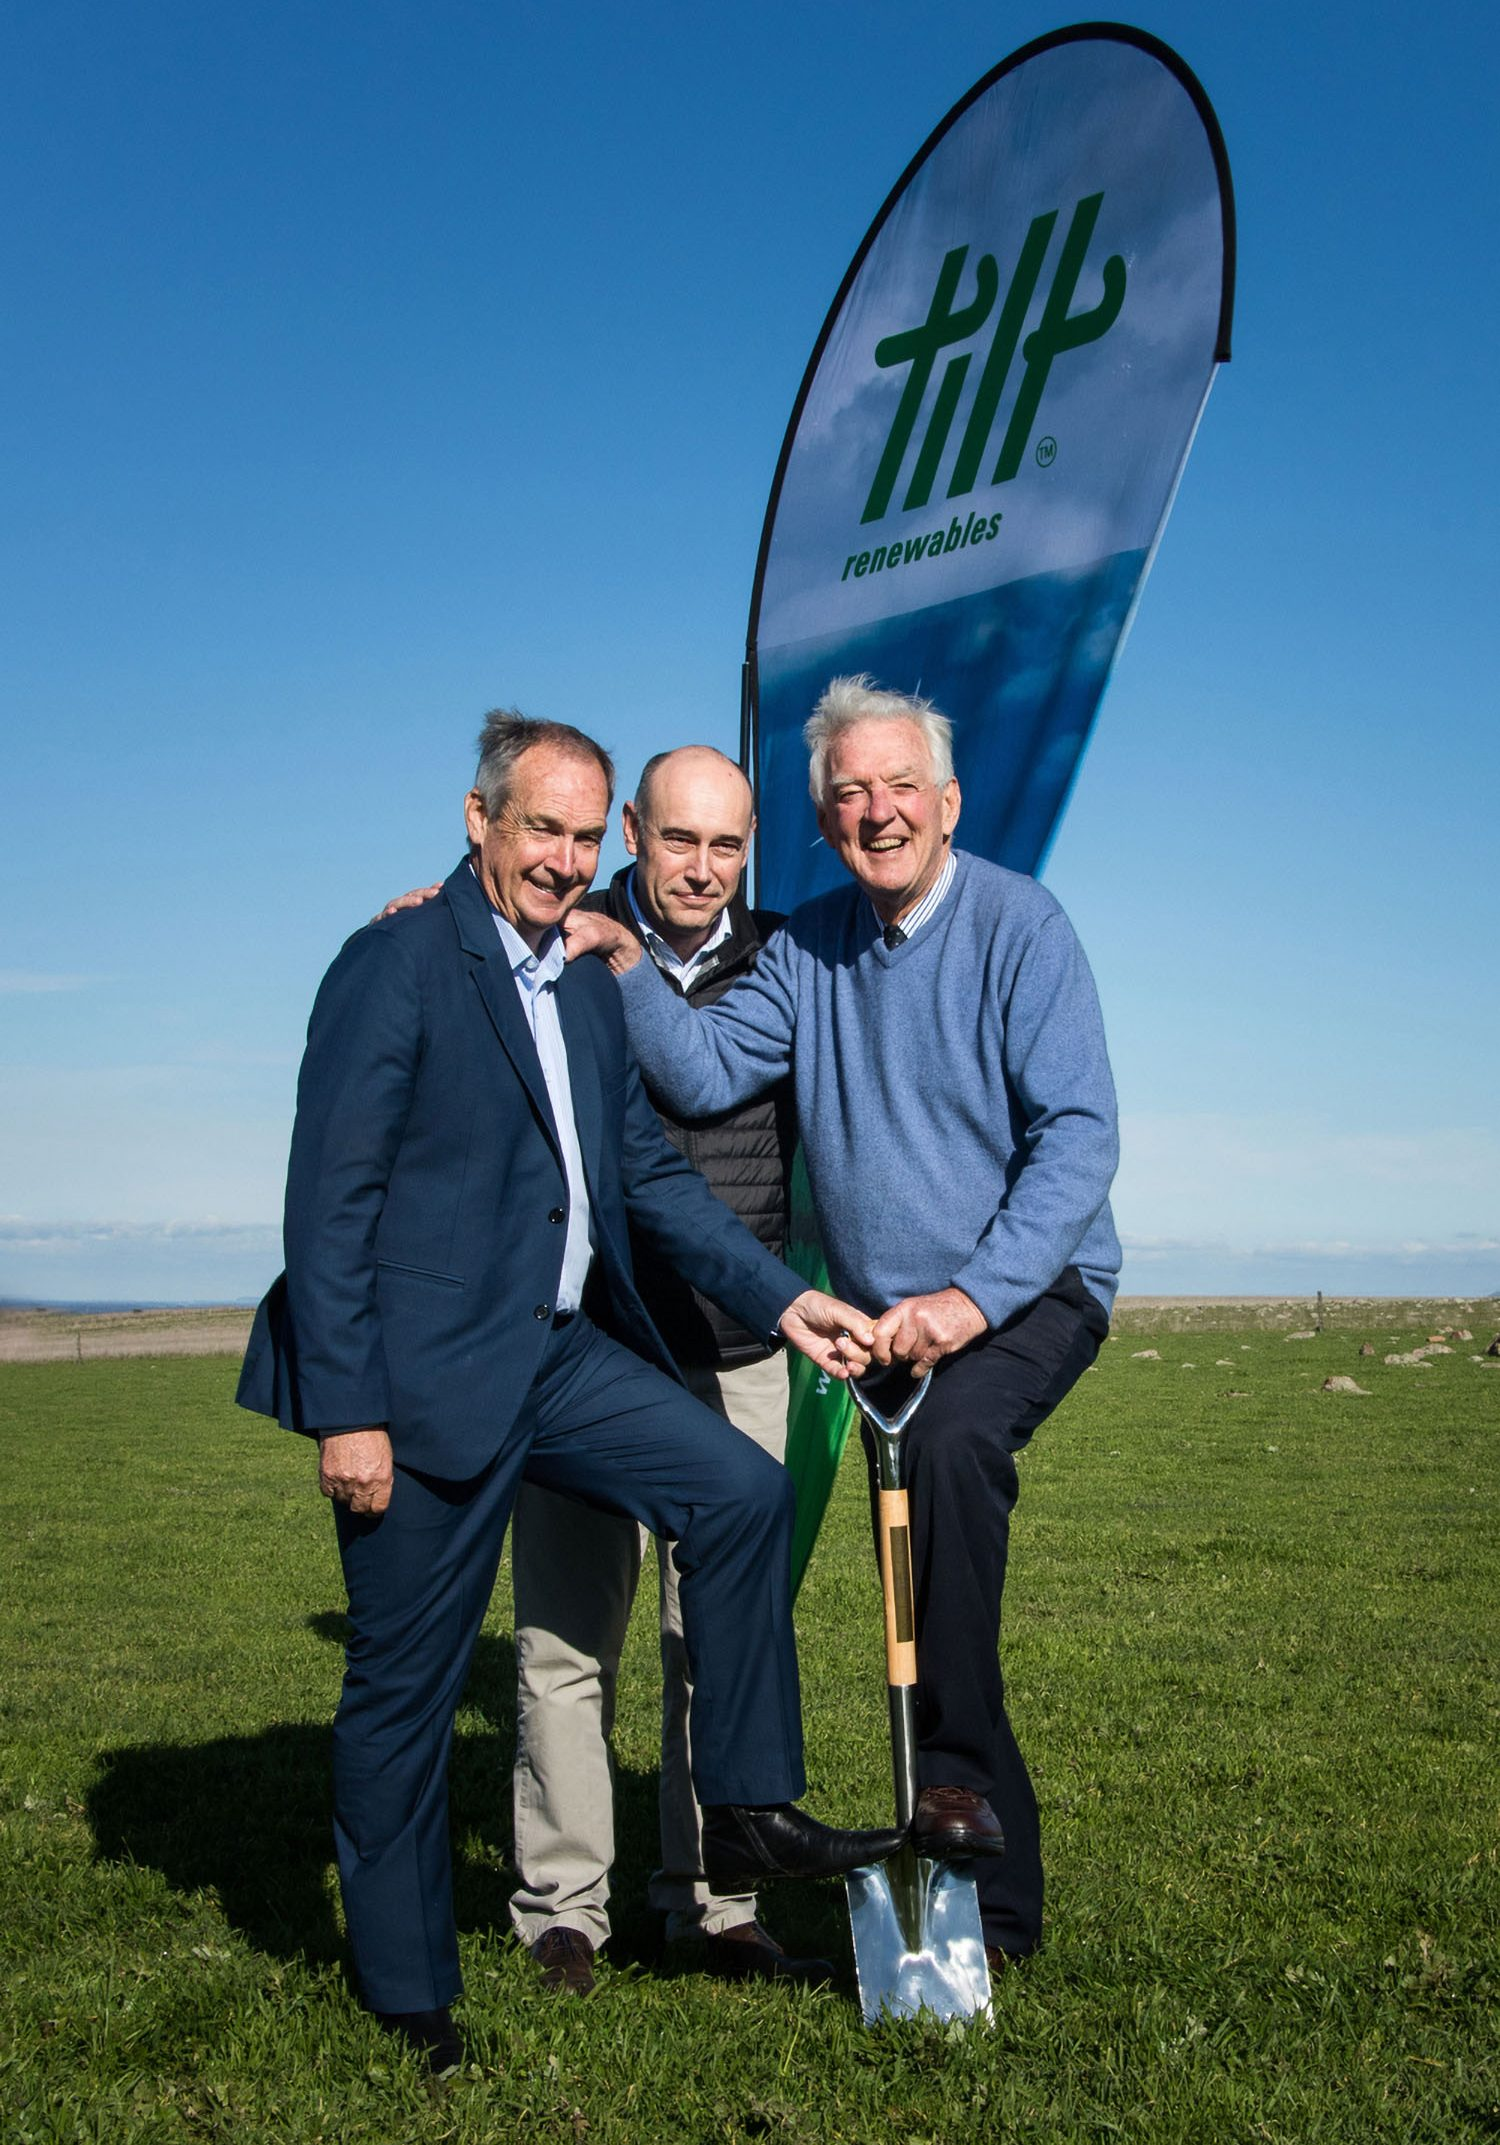 Turning the first sod at the Salt Creek Wind Farm Left to right: James Purcell MP, Robert Farron, Peter Coy Image Credit: Emily Wilson Photography